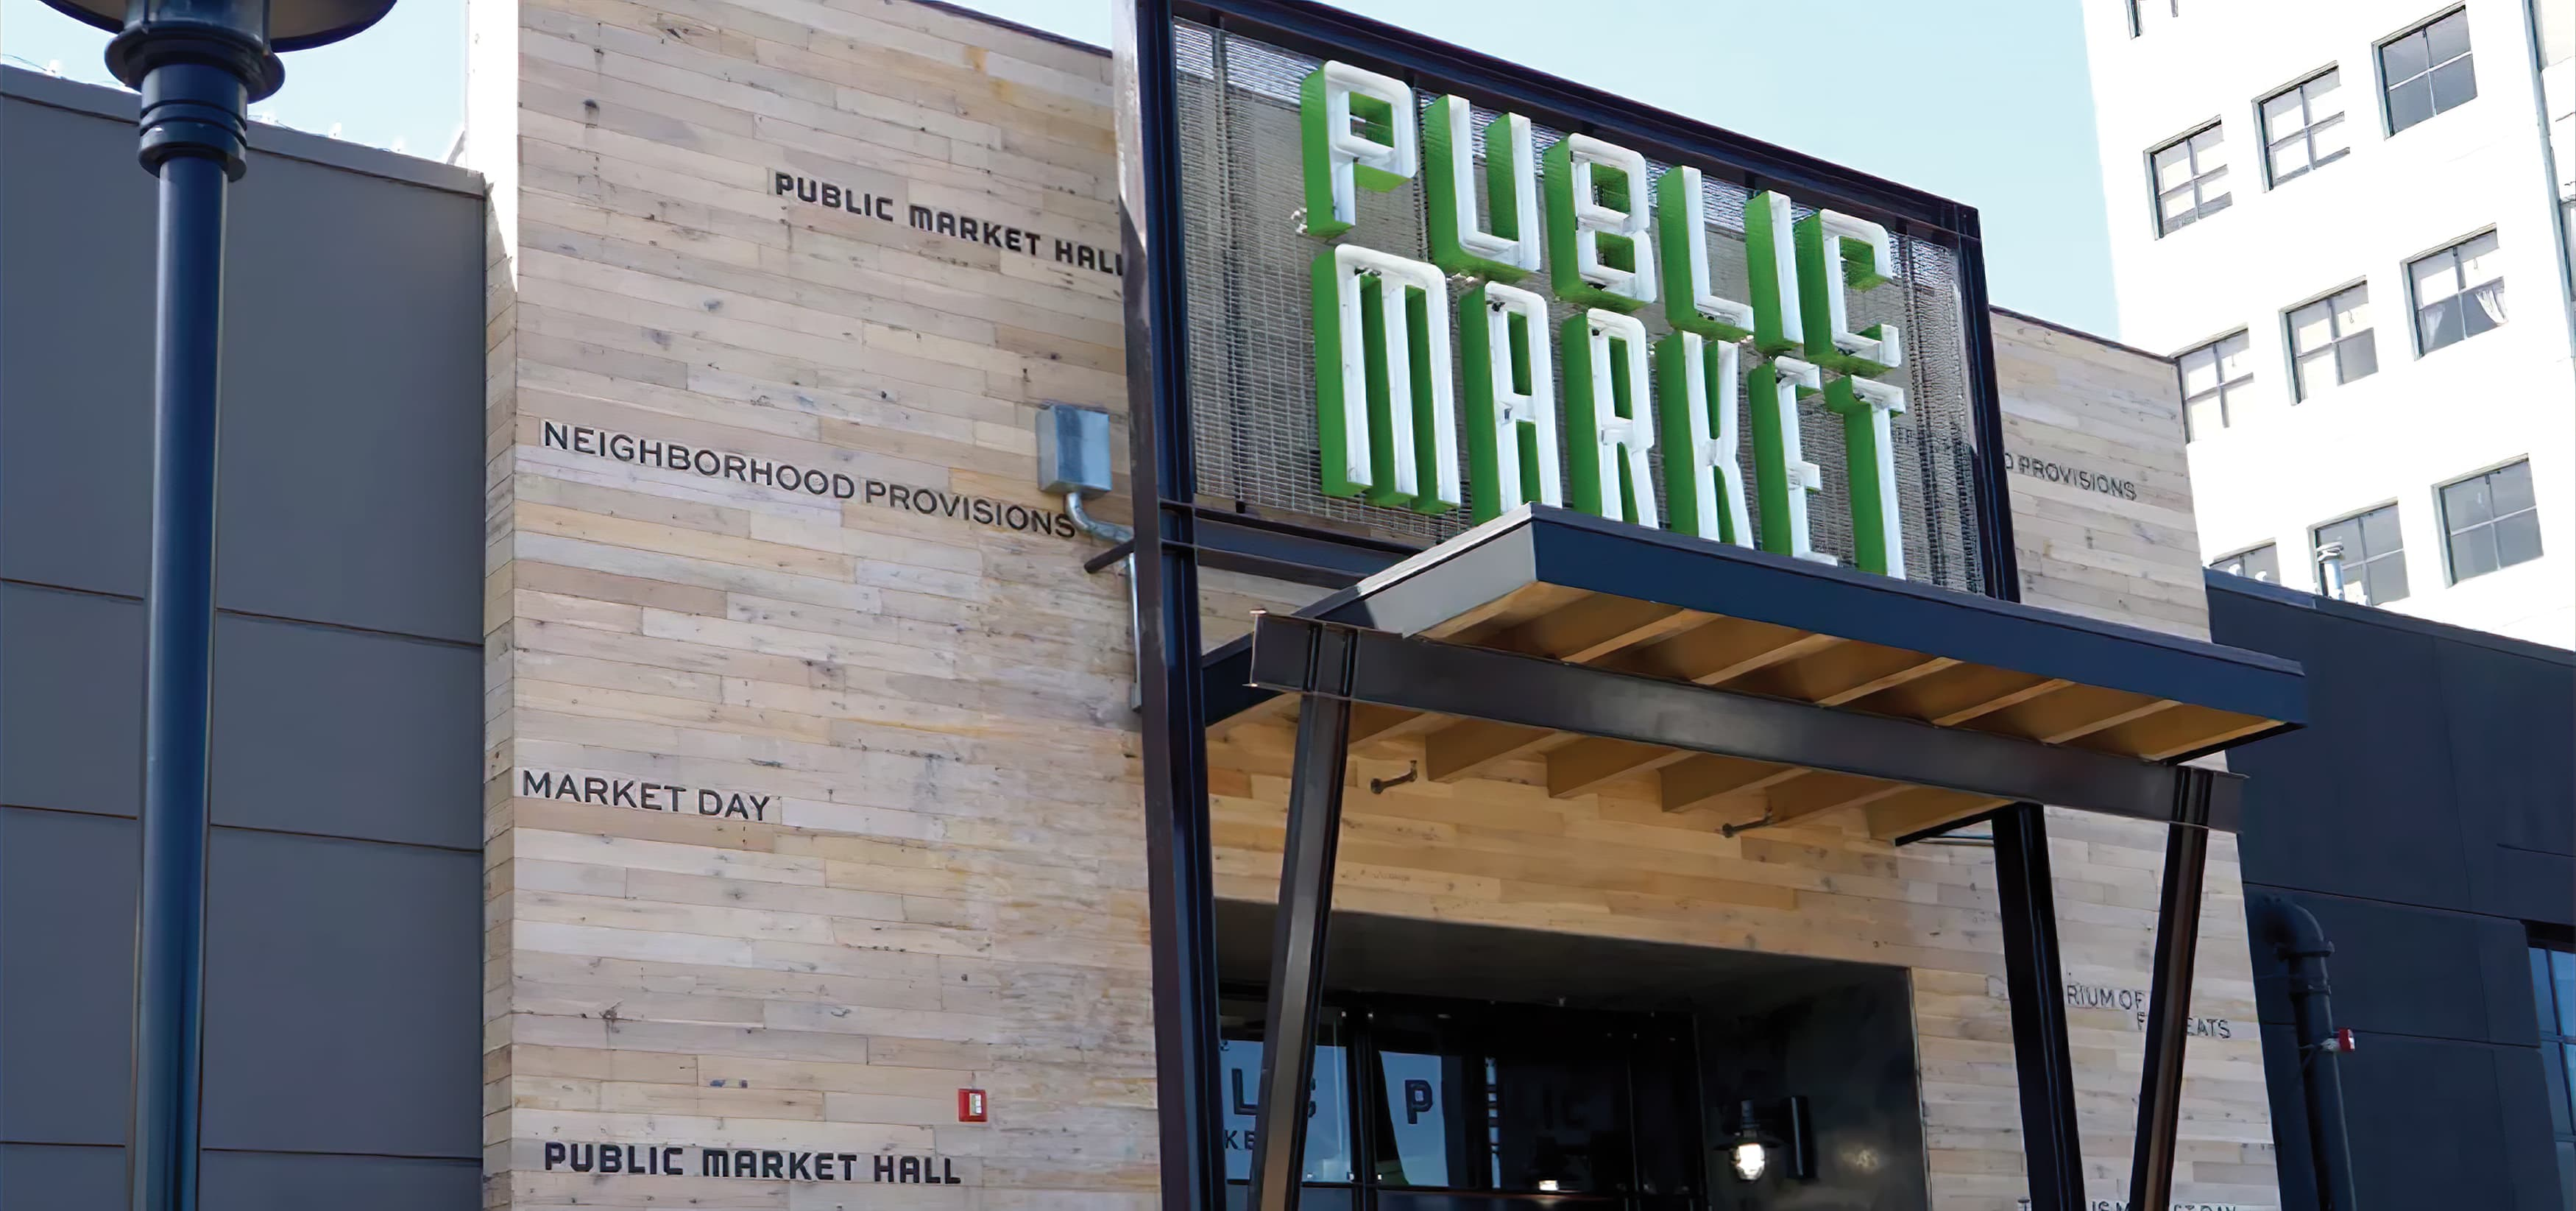 RSM Design worked with TMG Partners to develop signage and wayfinding program for Public Market, a dining and shopping center in San Francisco, California.